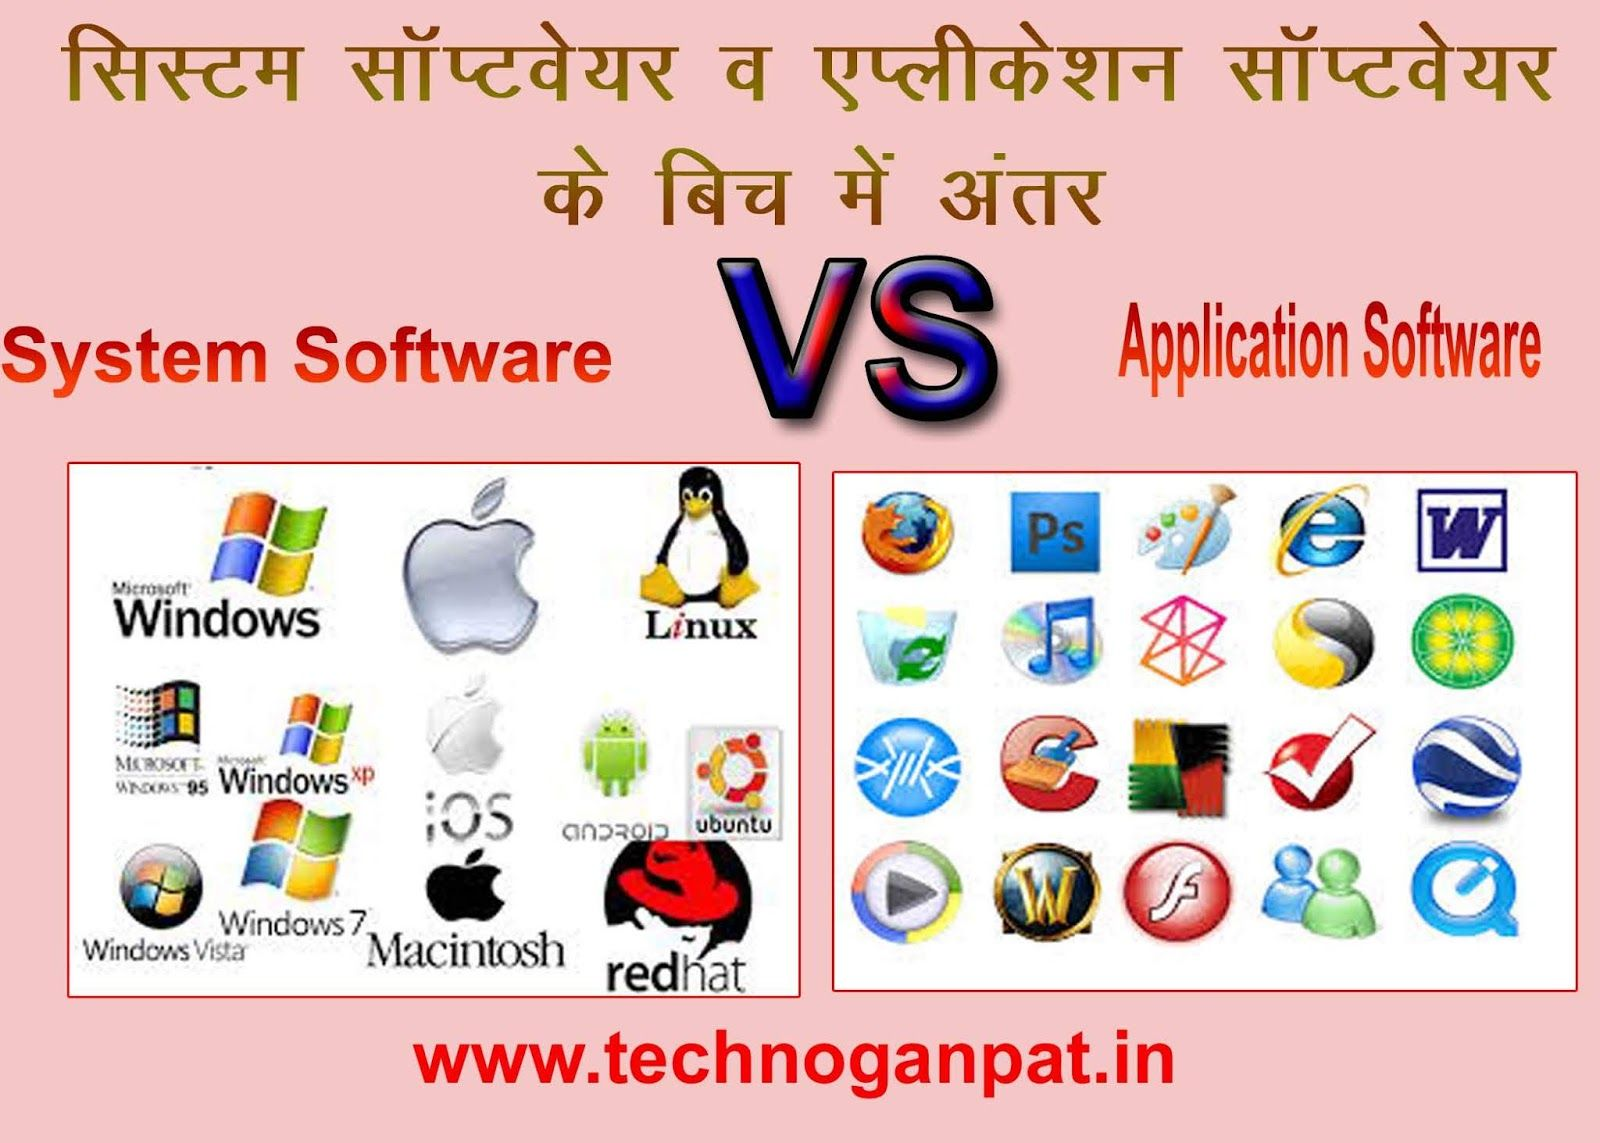 c920df6ab027c3aa85db0d8625312178 - Explain The Difference Between System Software And Application Software